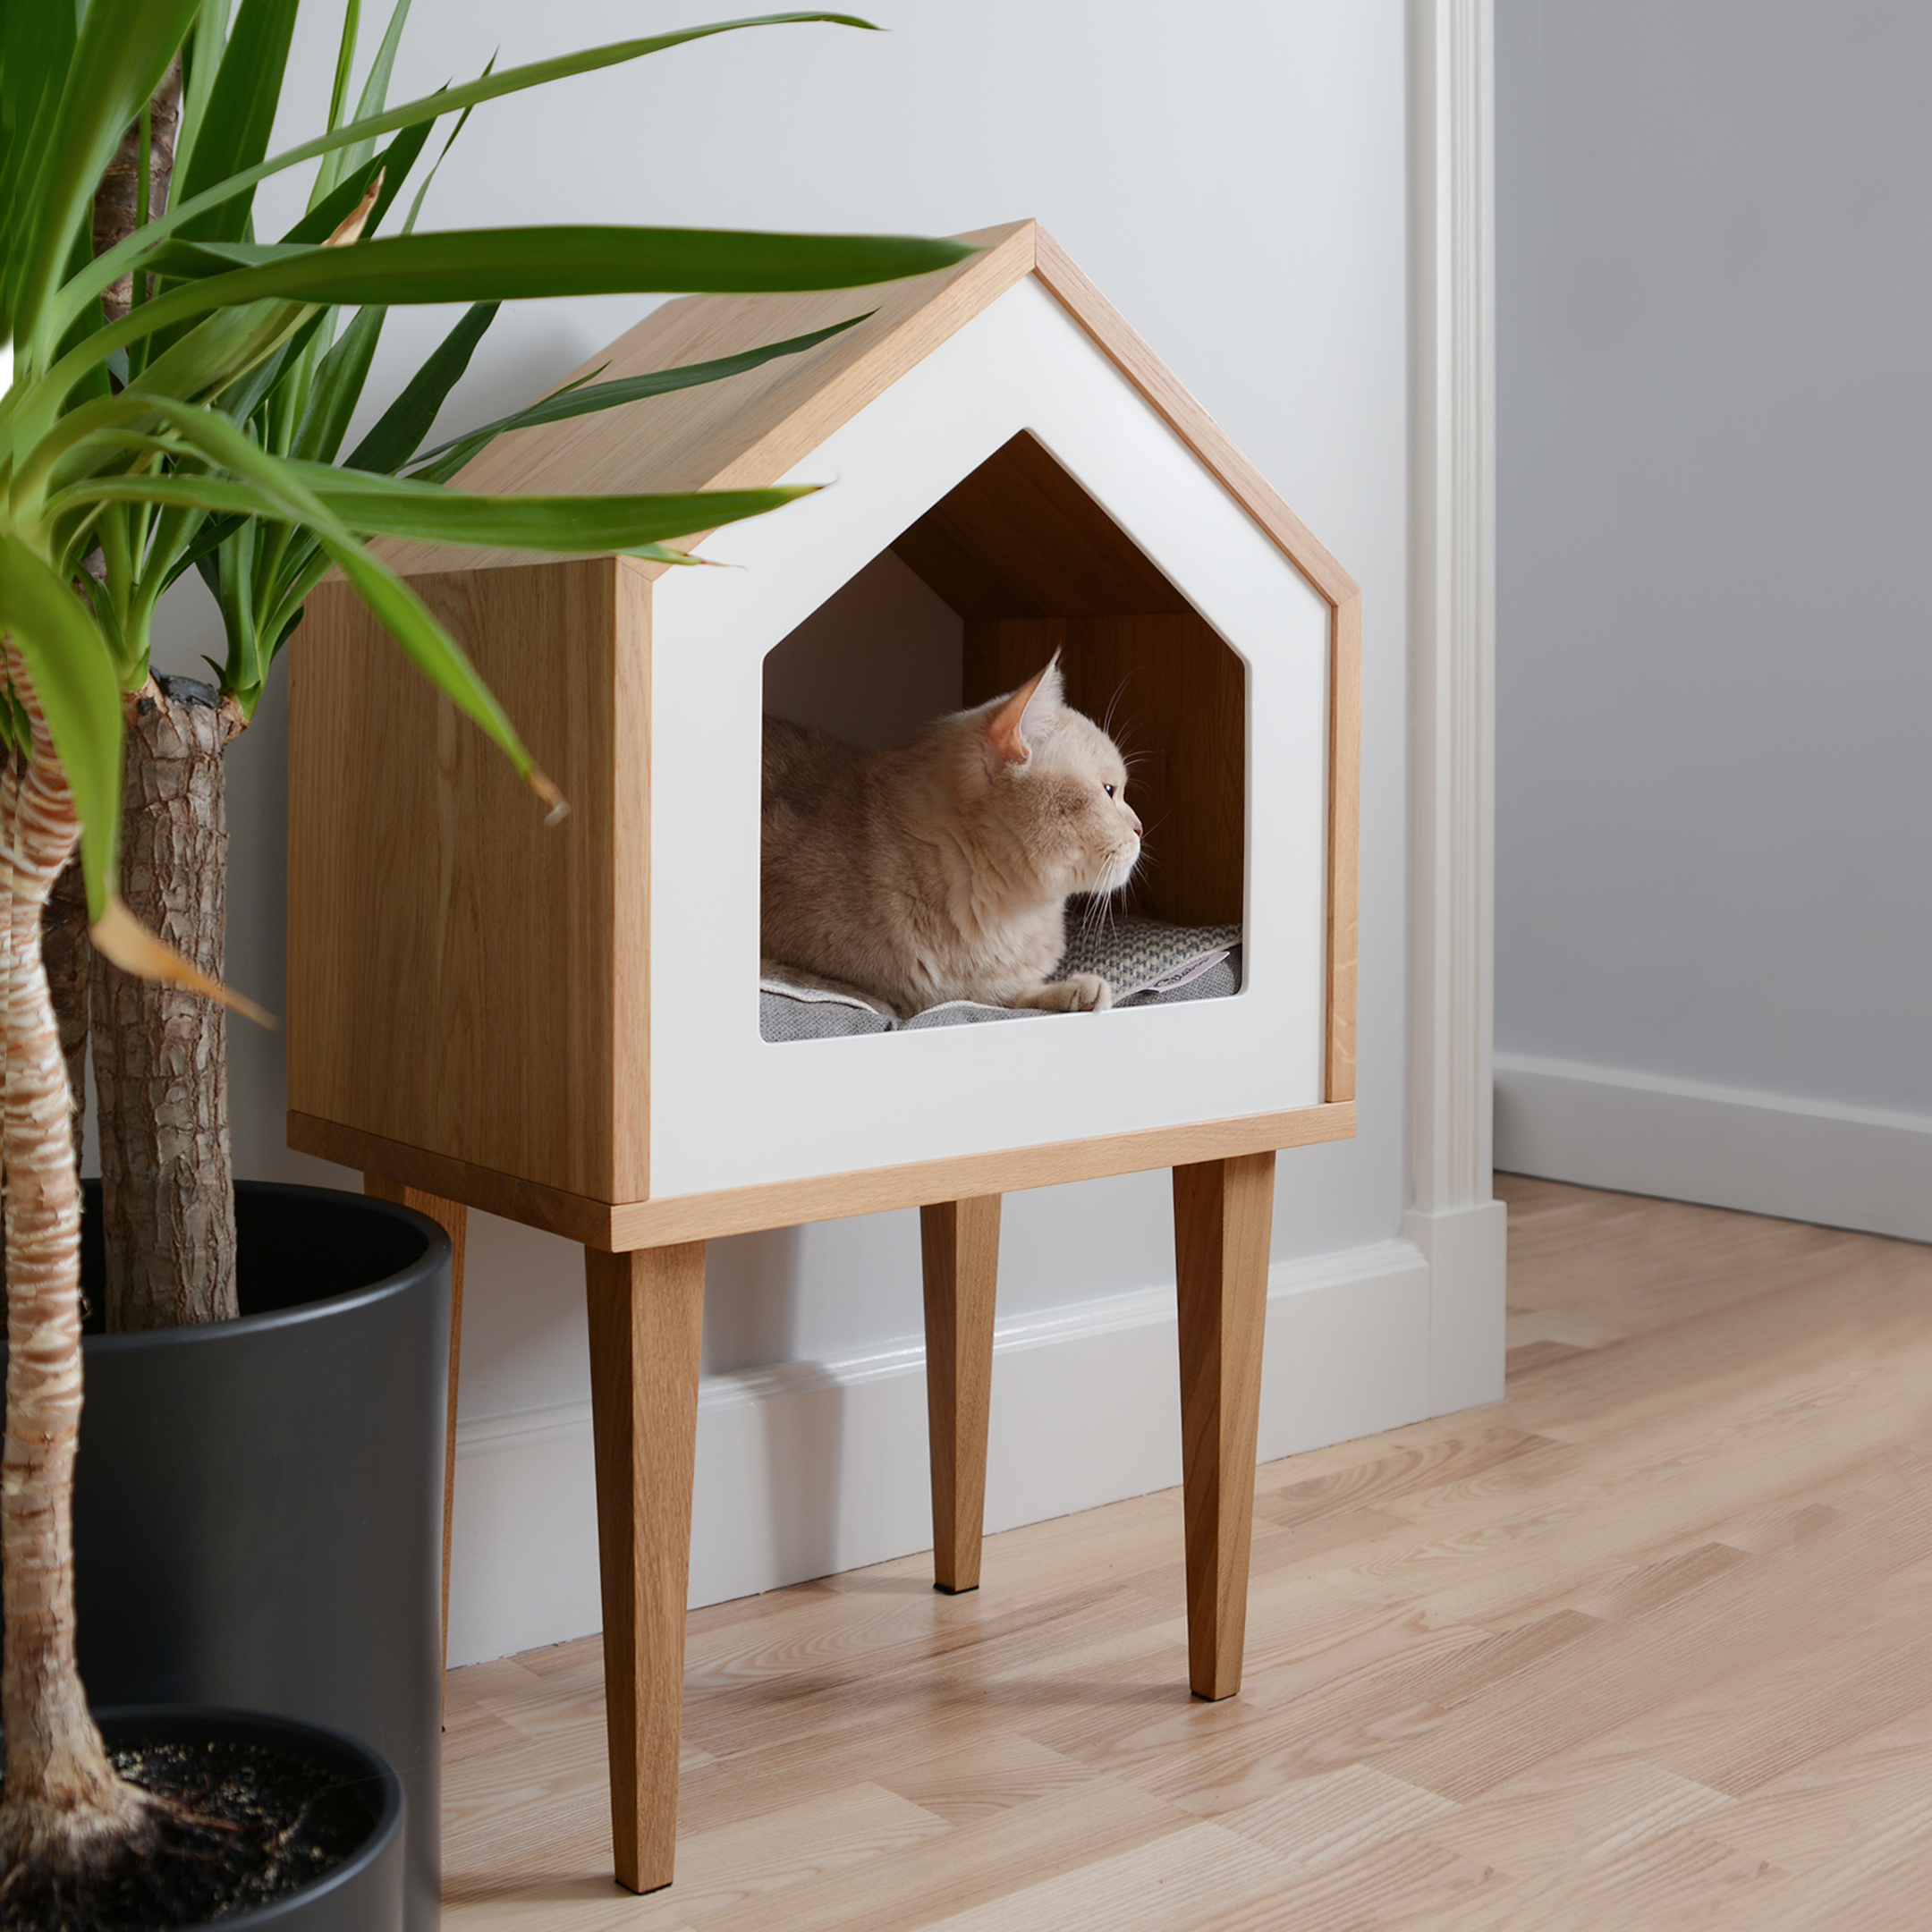 240 Cat Nest Ideas Pet Furniture Cat Bed Cat Furniture